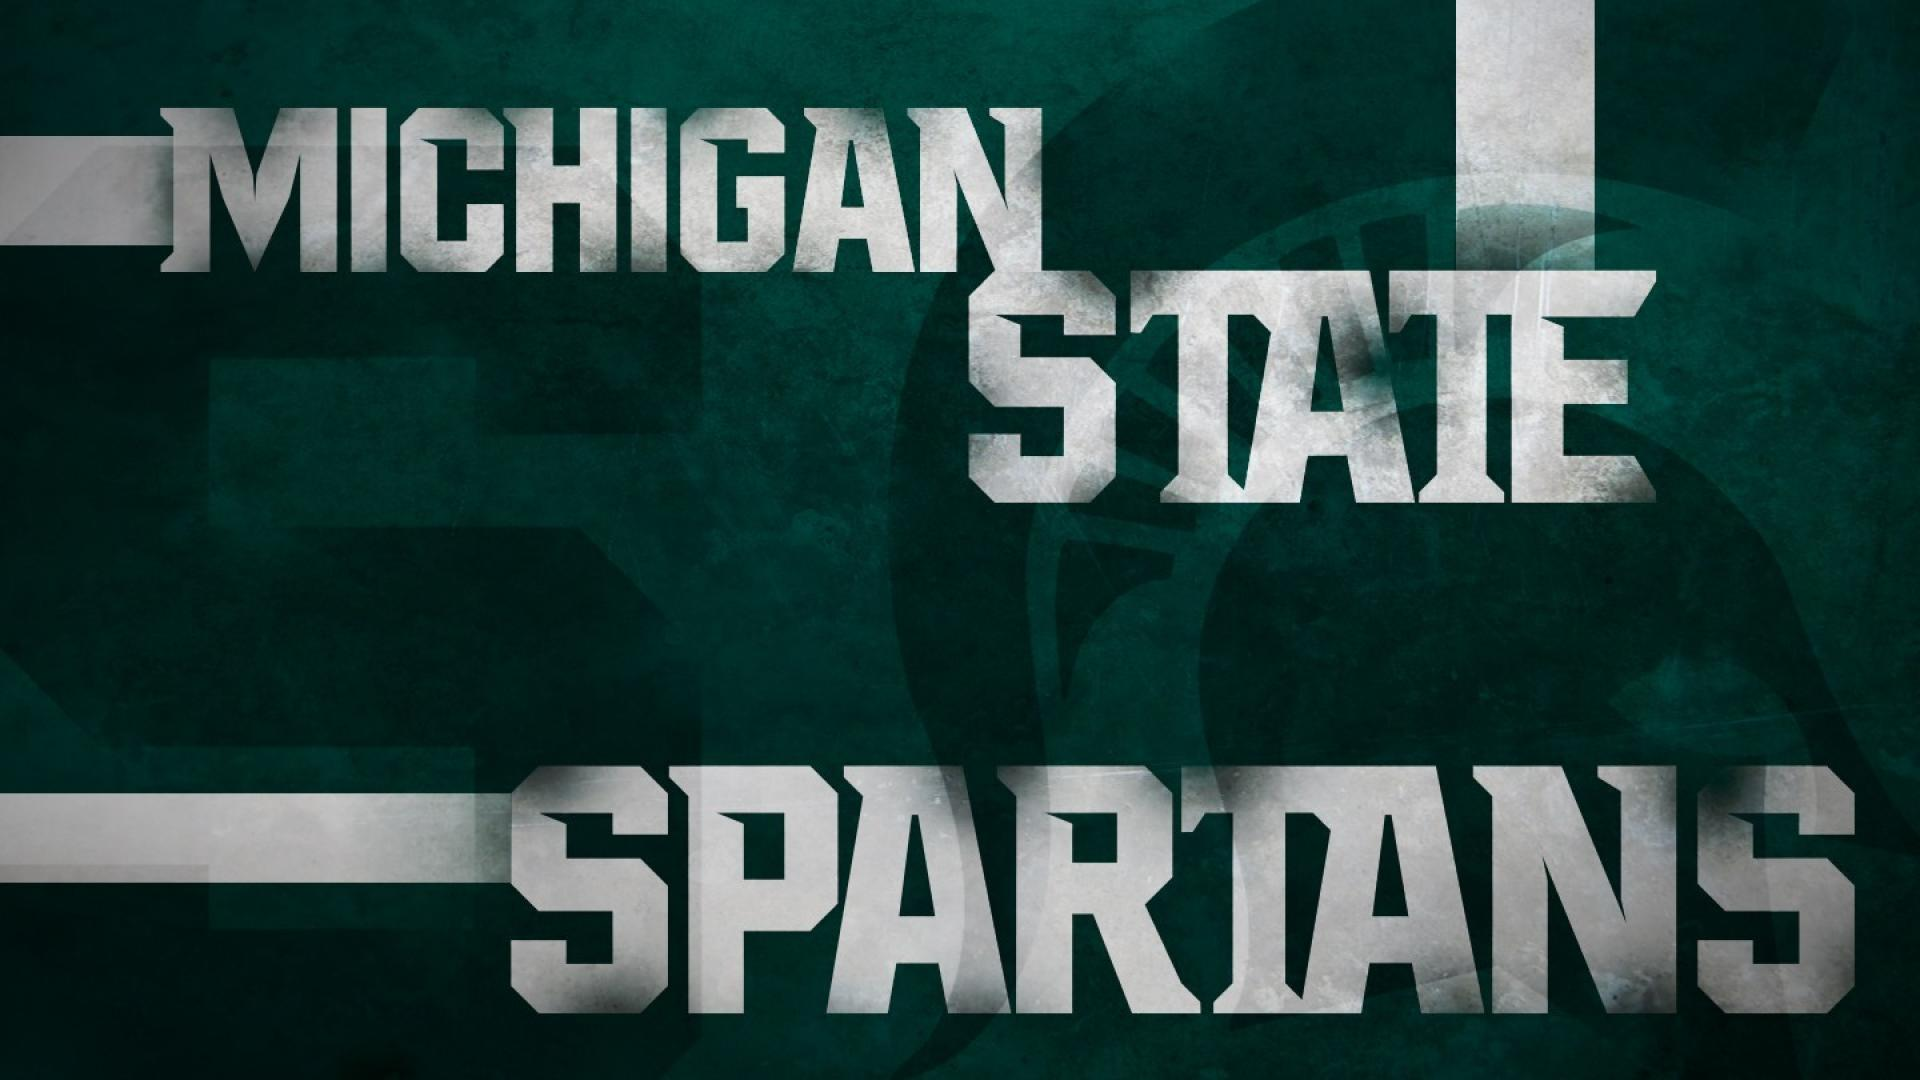 Michigan State Spartans Wallpaper Images Pictures   Becuo 1920x1080